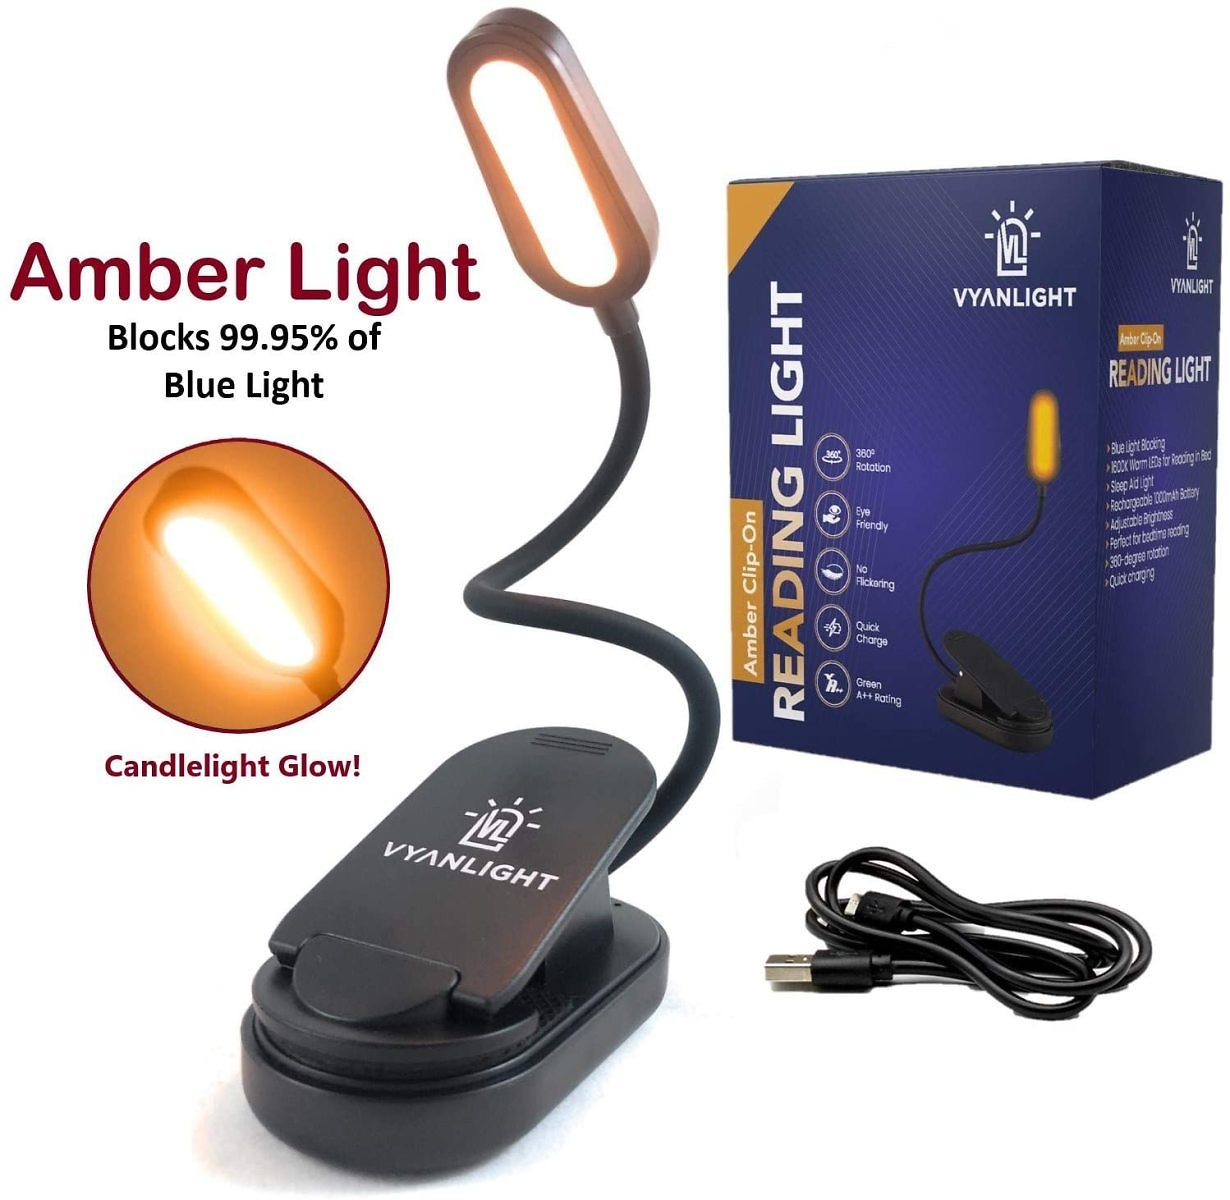 Book Light for Reading in Bed, Amber Clip On Reading Light, 99.95% Blue Light Blocking, Rechargeable, 1600K Warm LEDs with 3-Set